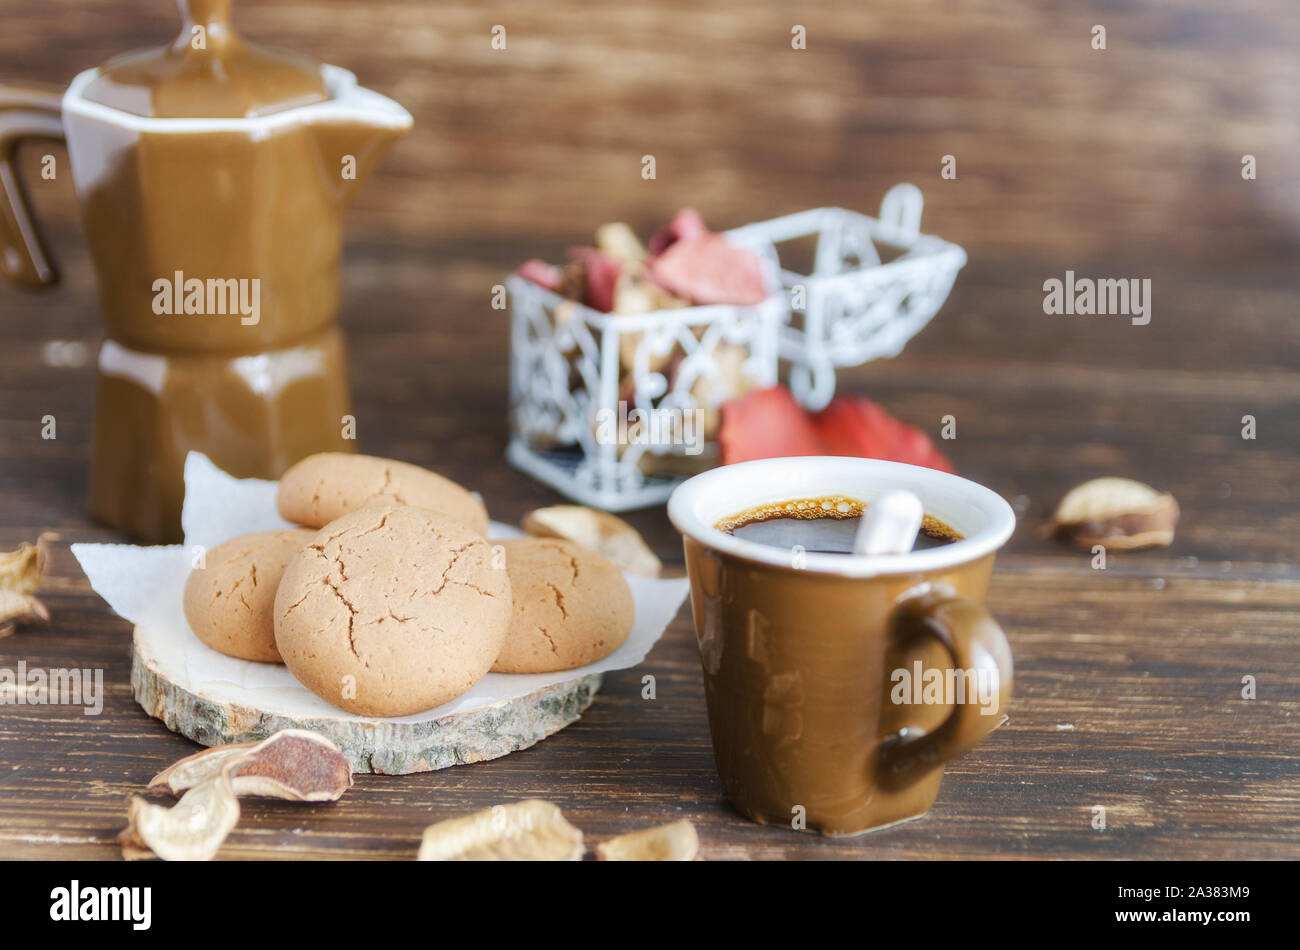 Cup Of Black Coffee And Almond Cookies Coffee Kettle Decorated With Fall Leaves On Wooden Table Delicious Beverage For Cold Autumn Season Good Mor Stock Photo Alamy